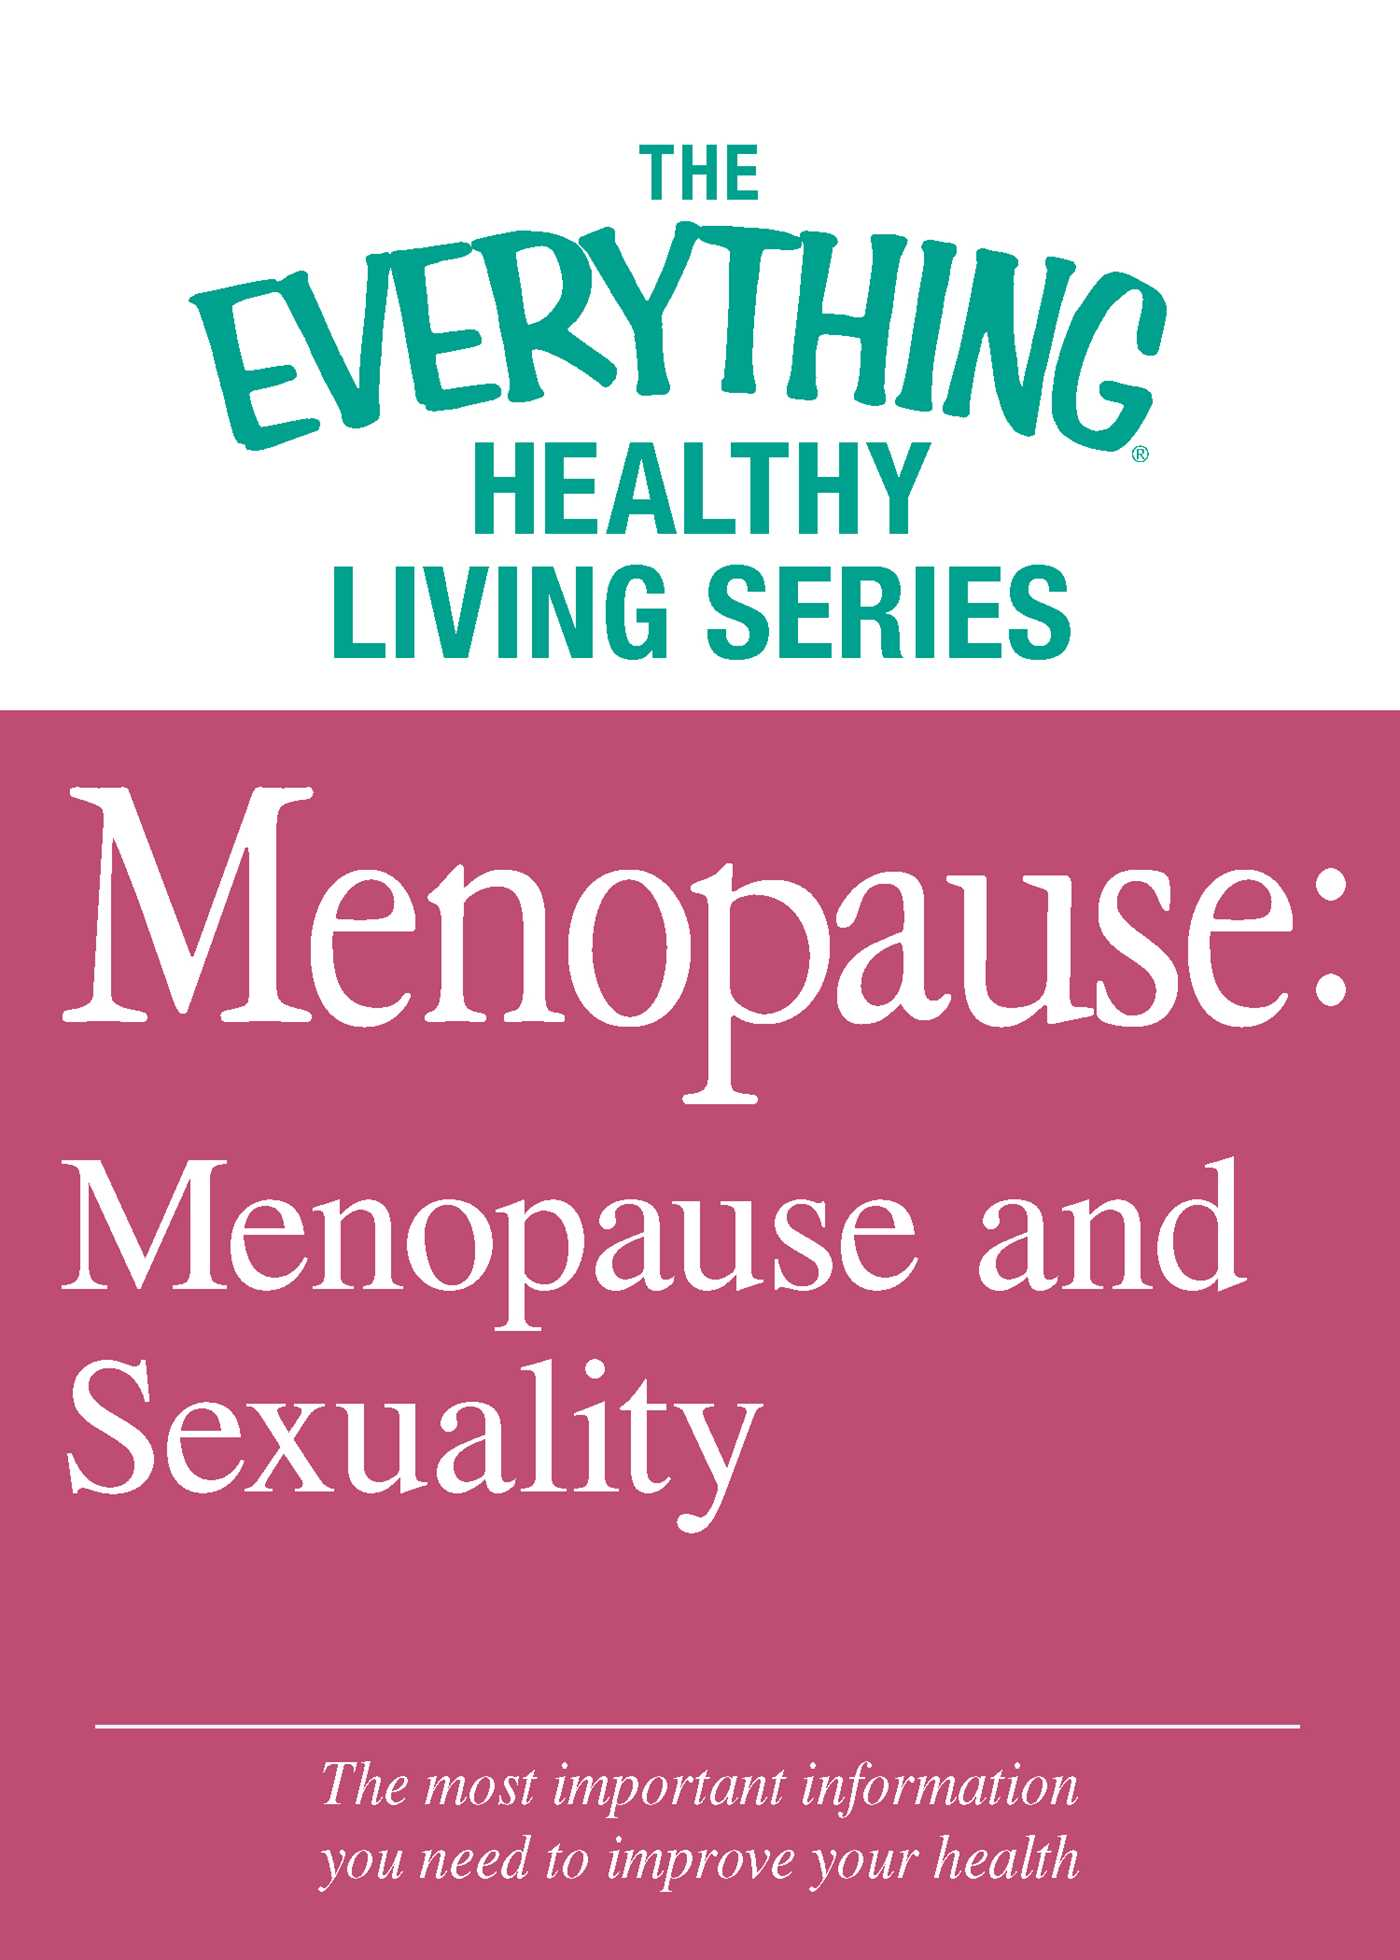 Menopause menopause and sexuality 9781440561719 hr